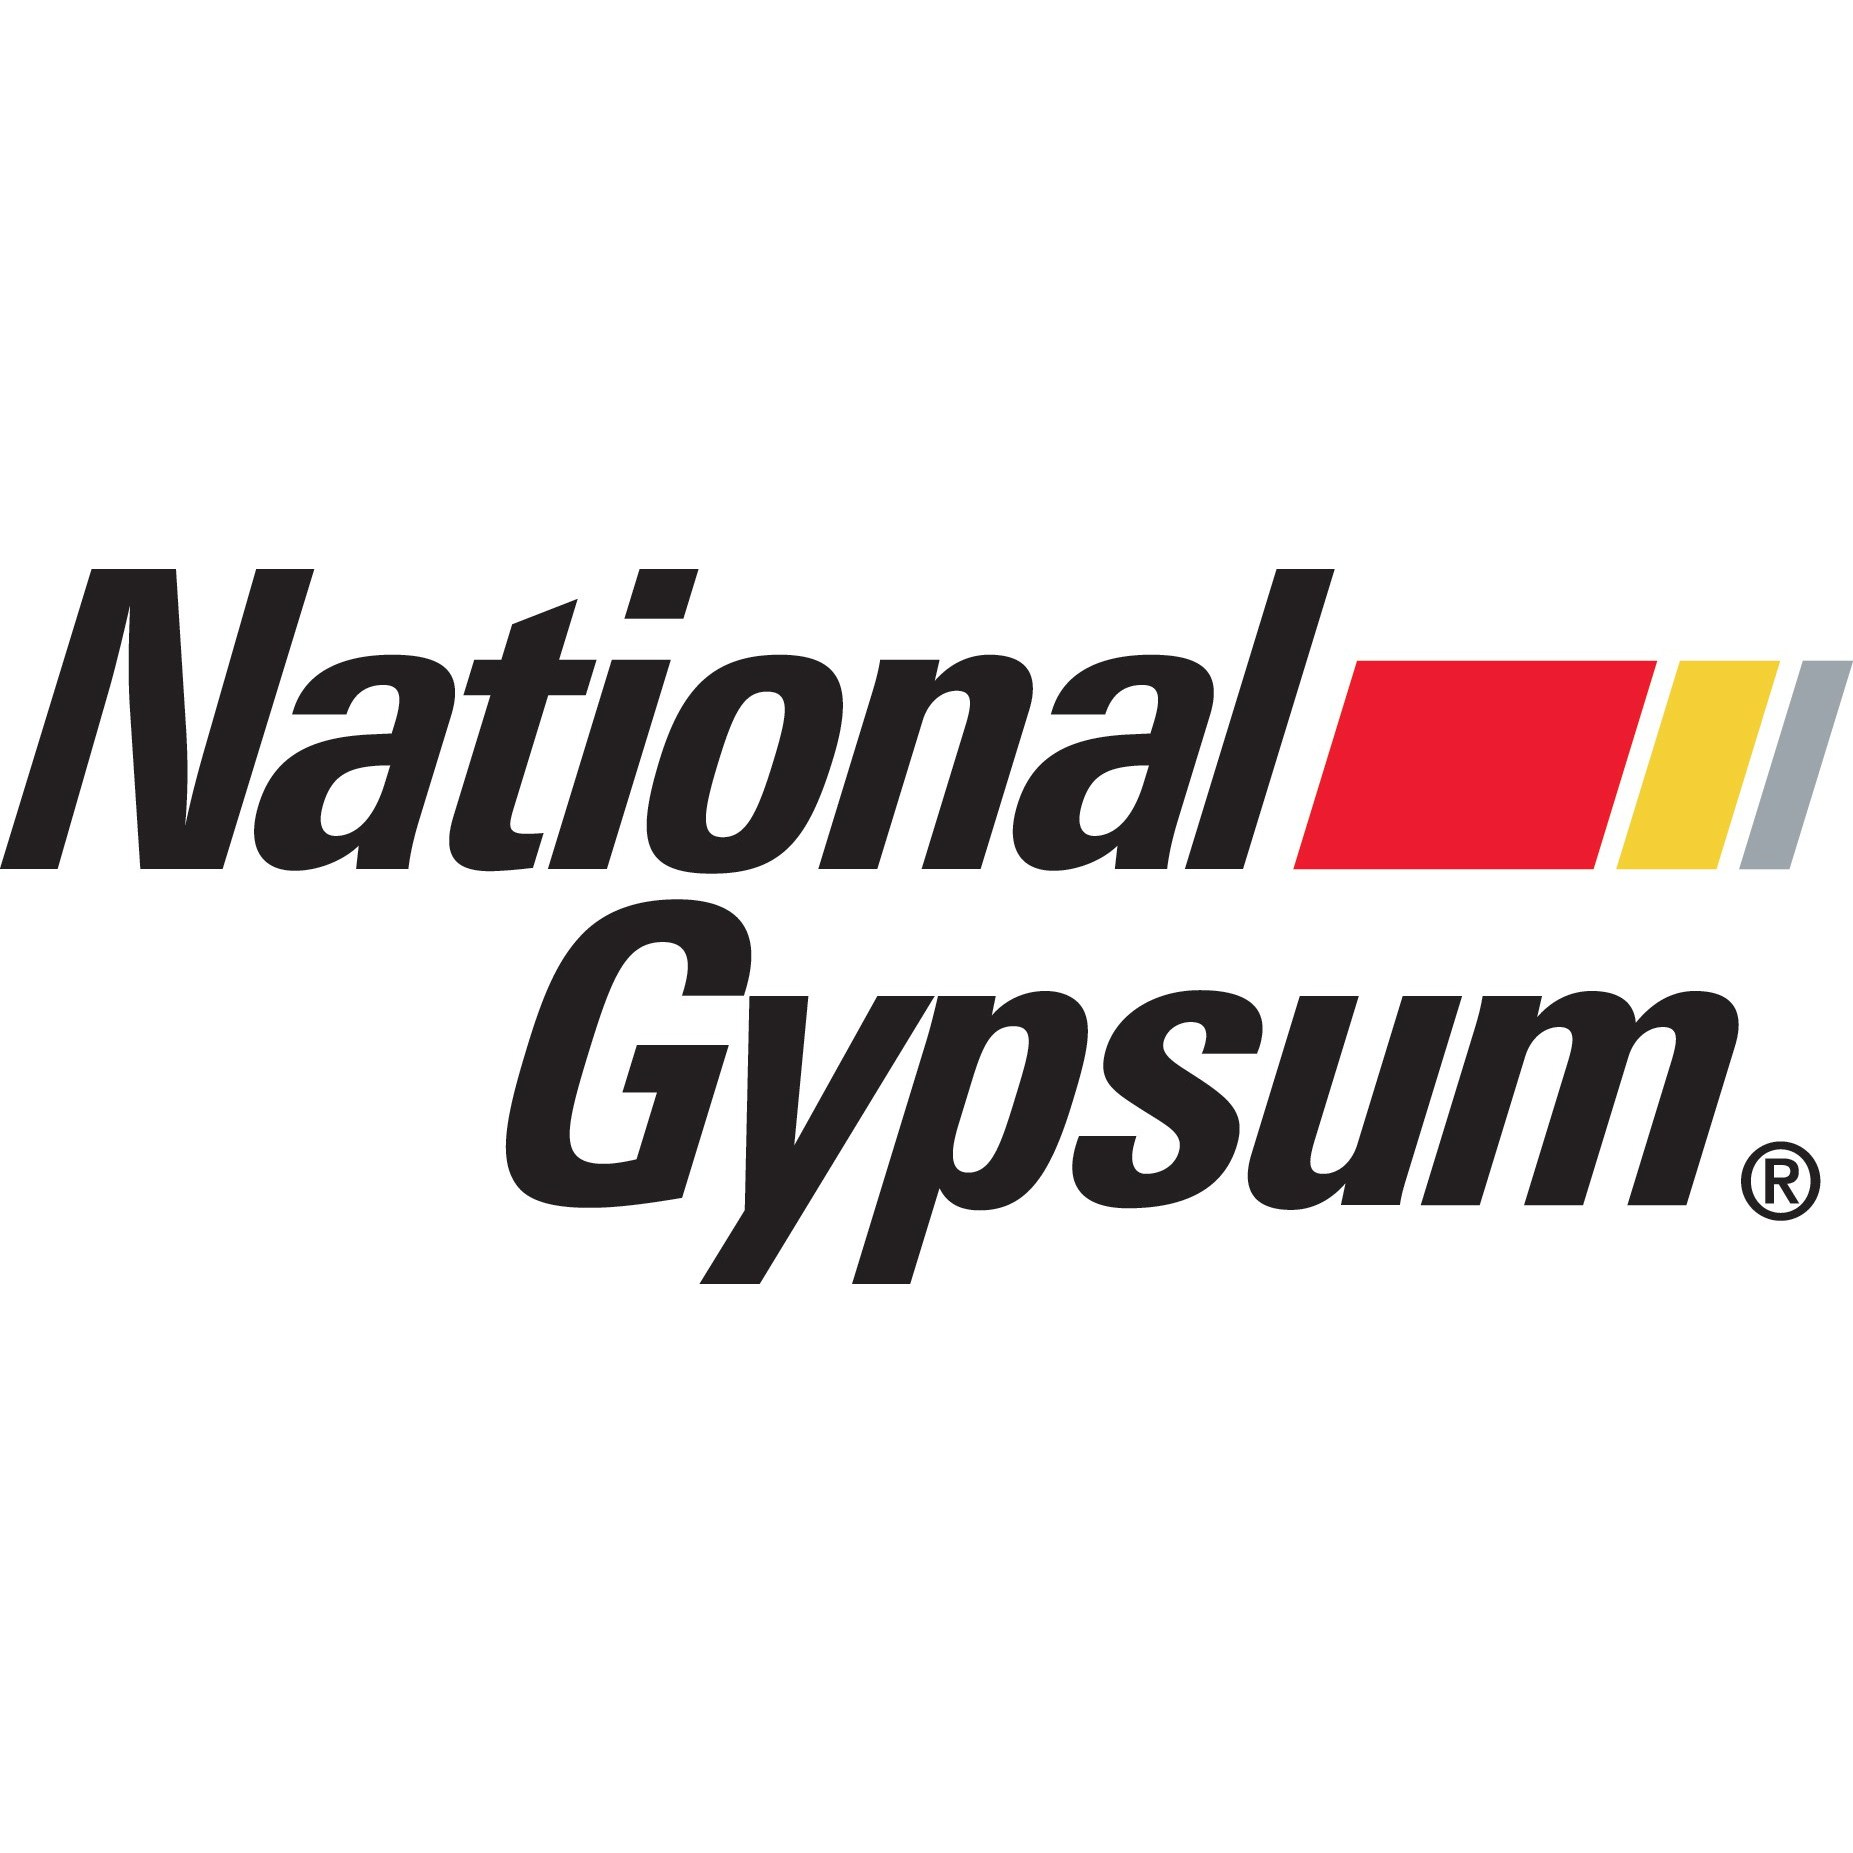 National Gypsum.jpg